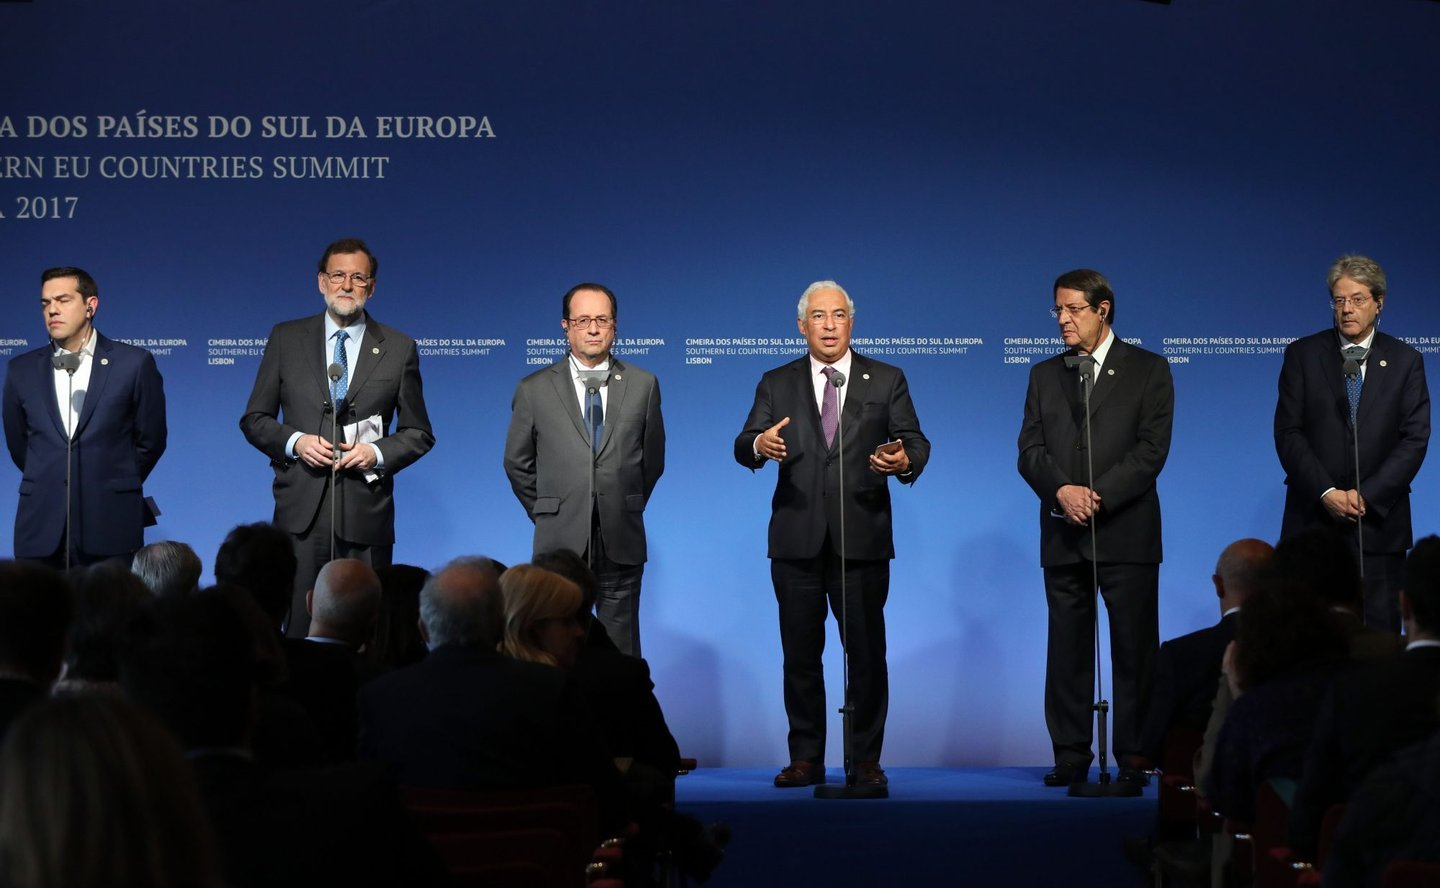 Summit of the European Union Southern Countries